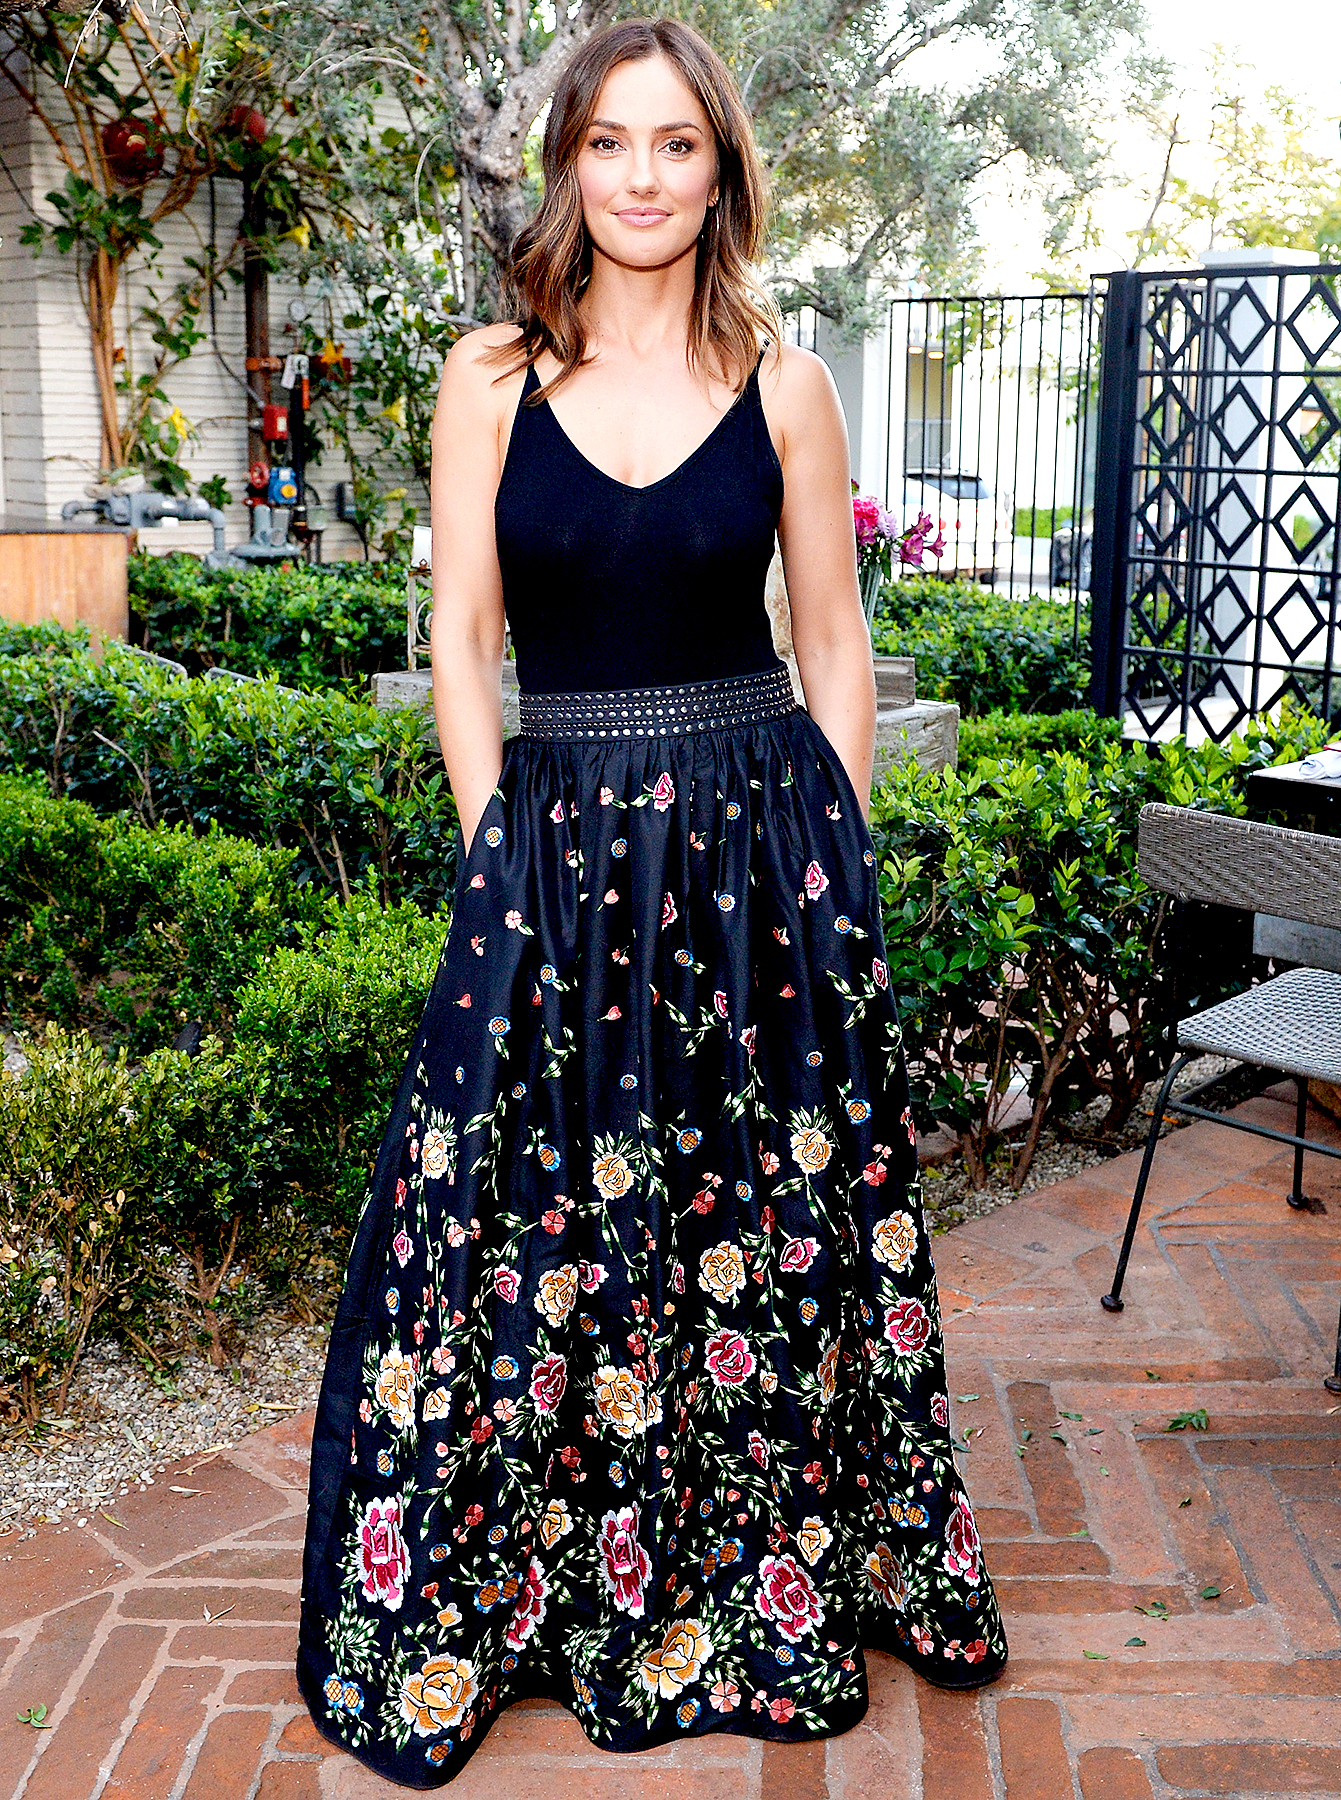 Minka Kelly attends Minka Kelly and Barrett Ward Co-Host the FashionABLE Equal Pay Day kick-off Dinner at Gracias Madre on March 29, 2017 in Los Angeles, California.